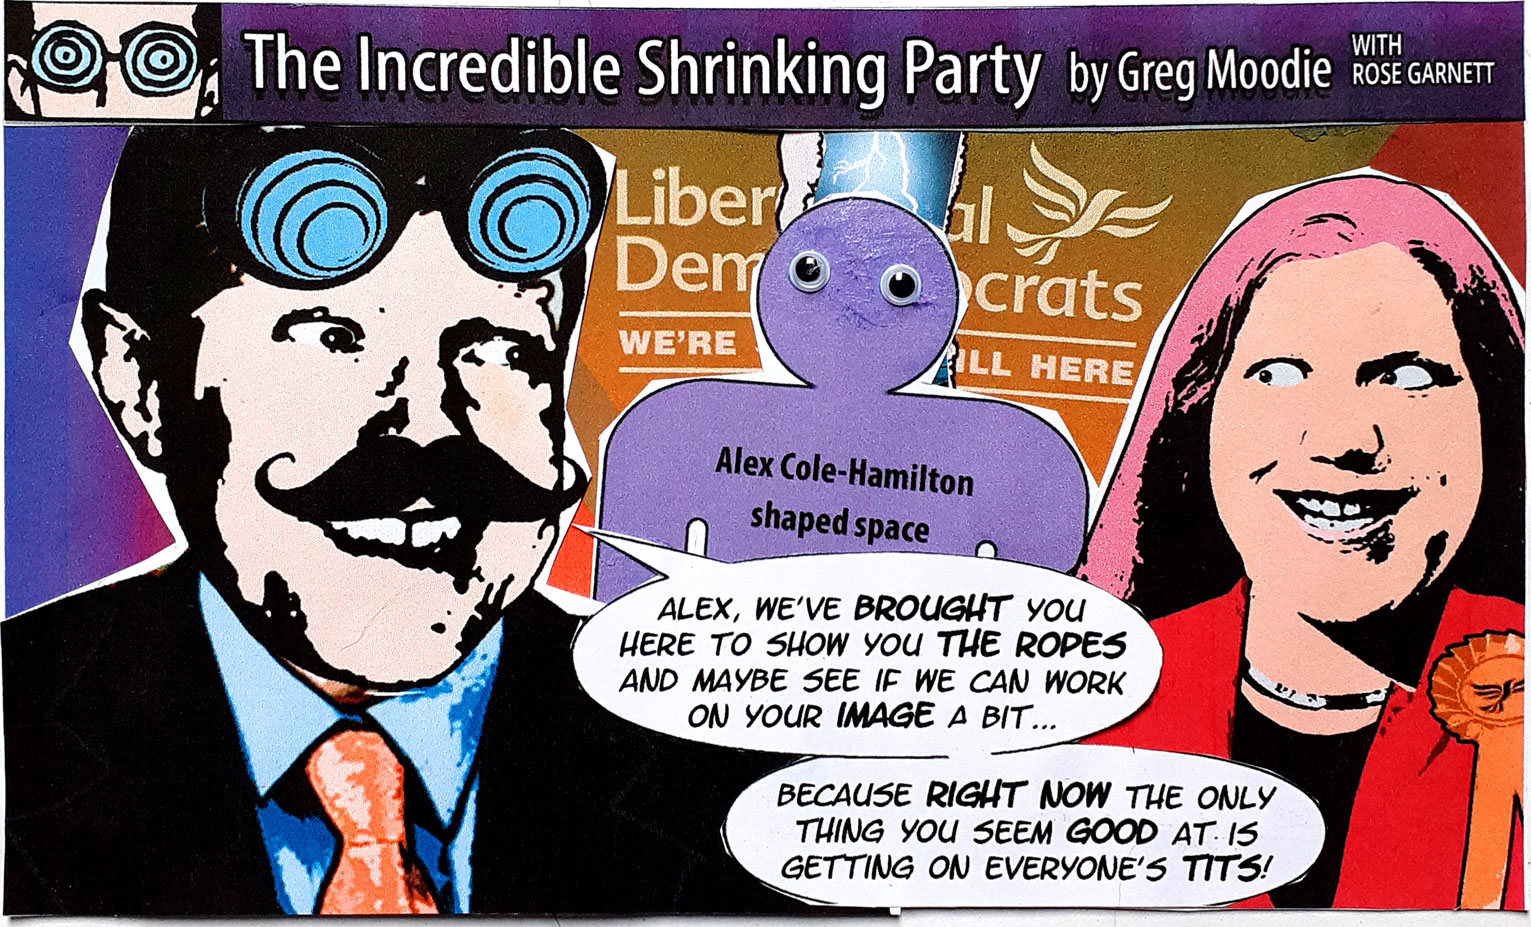 The Incredible Shrinking Party